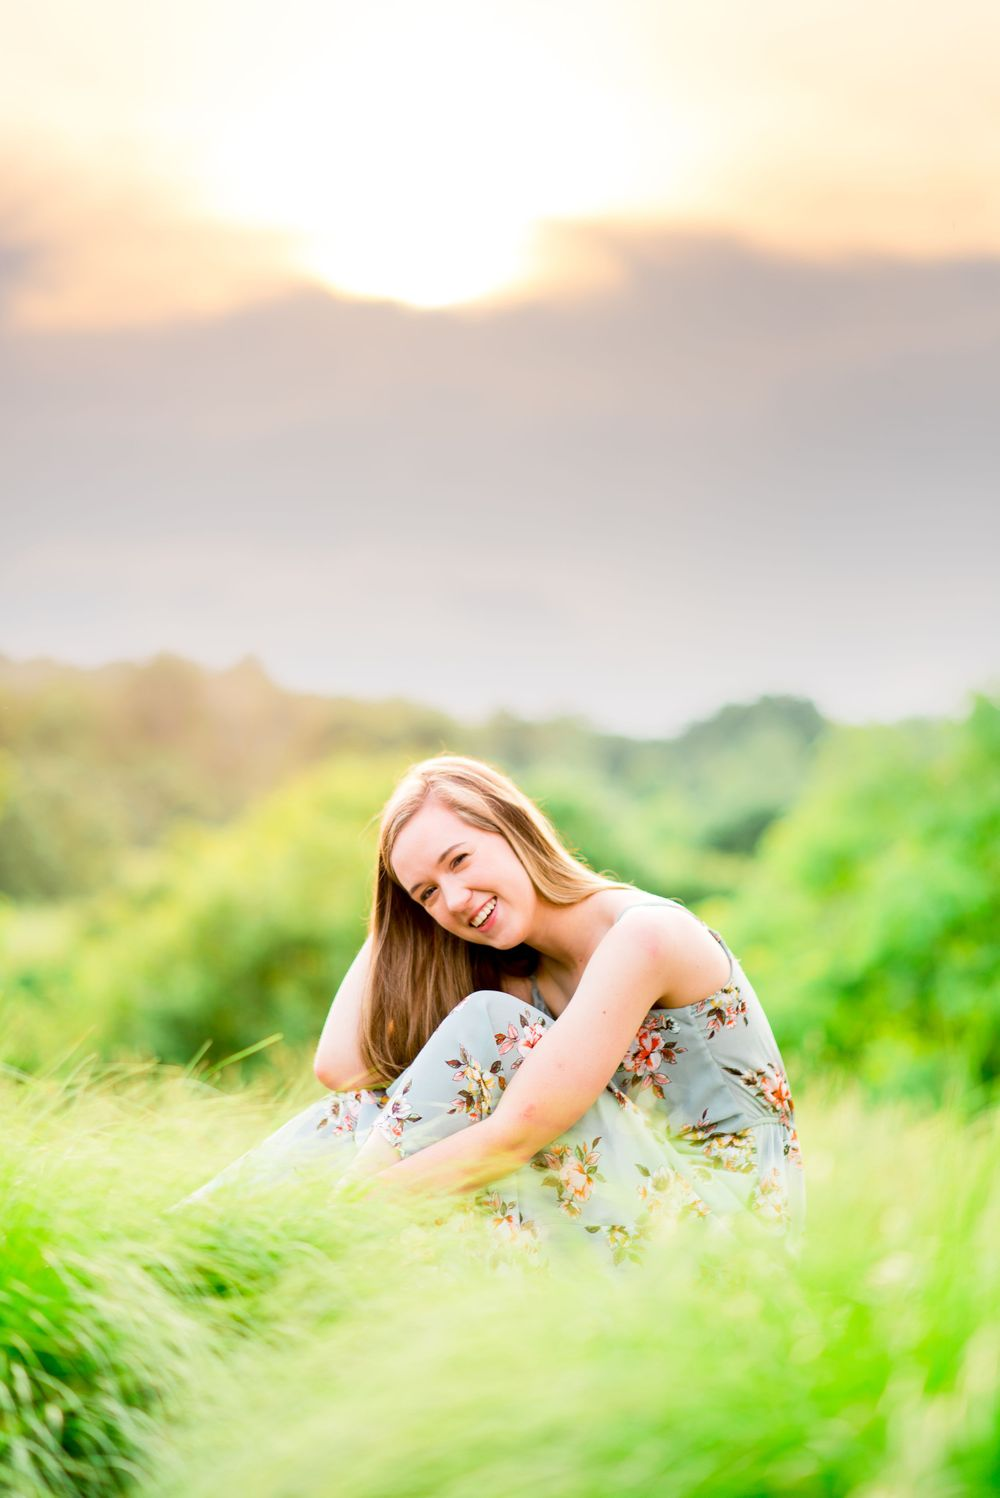 girl in a light blue floral dress sitting and leaning on her knee in a field of light green grass with a purple sky